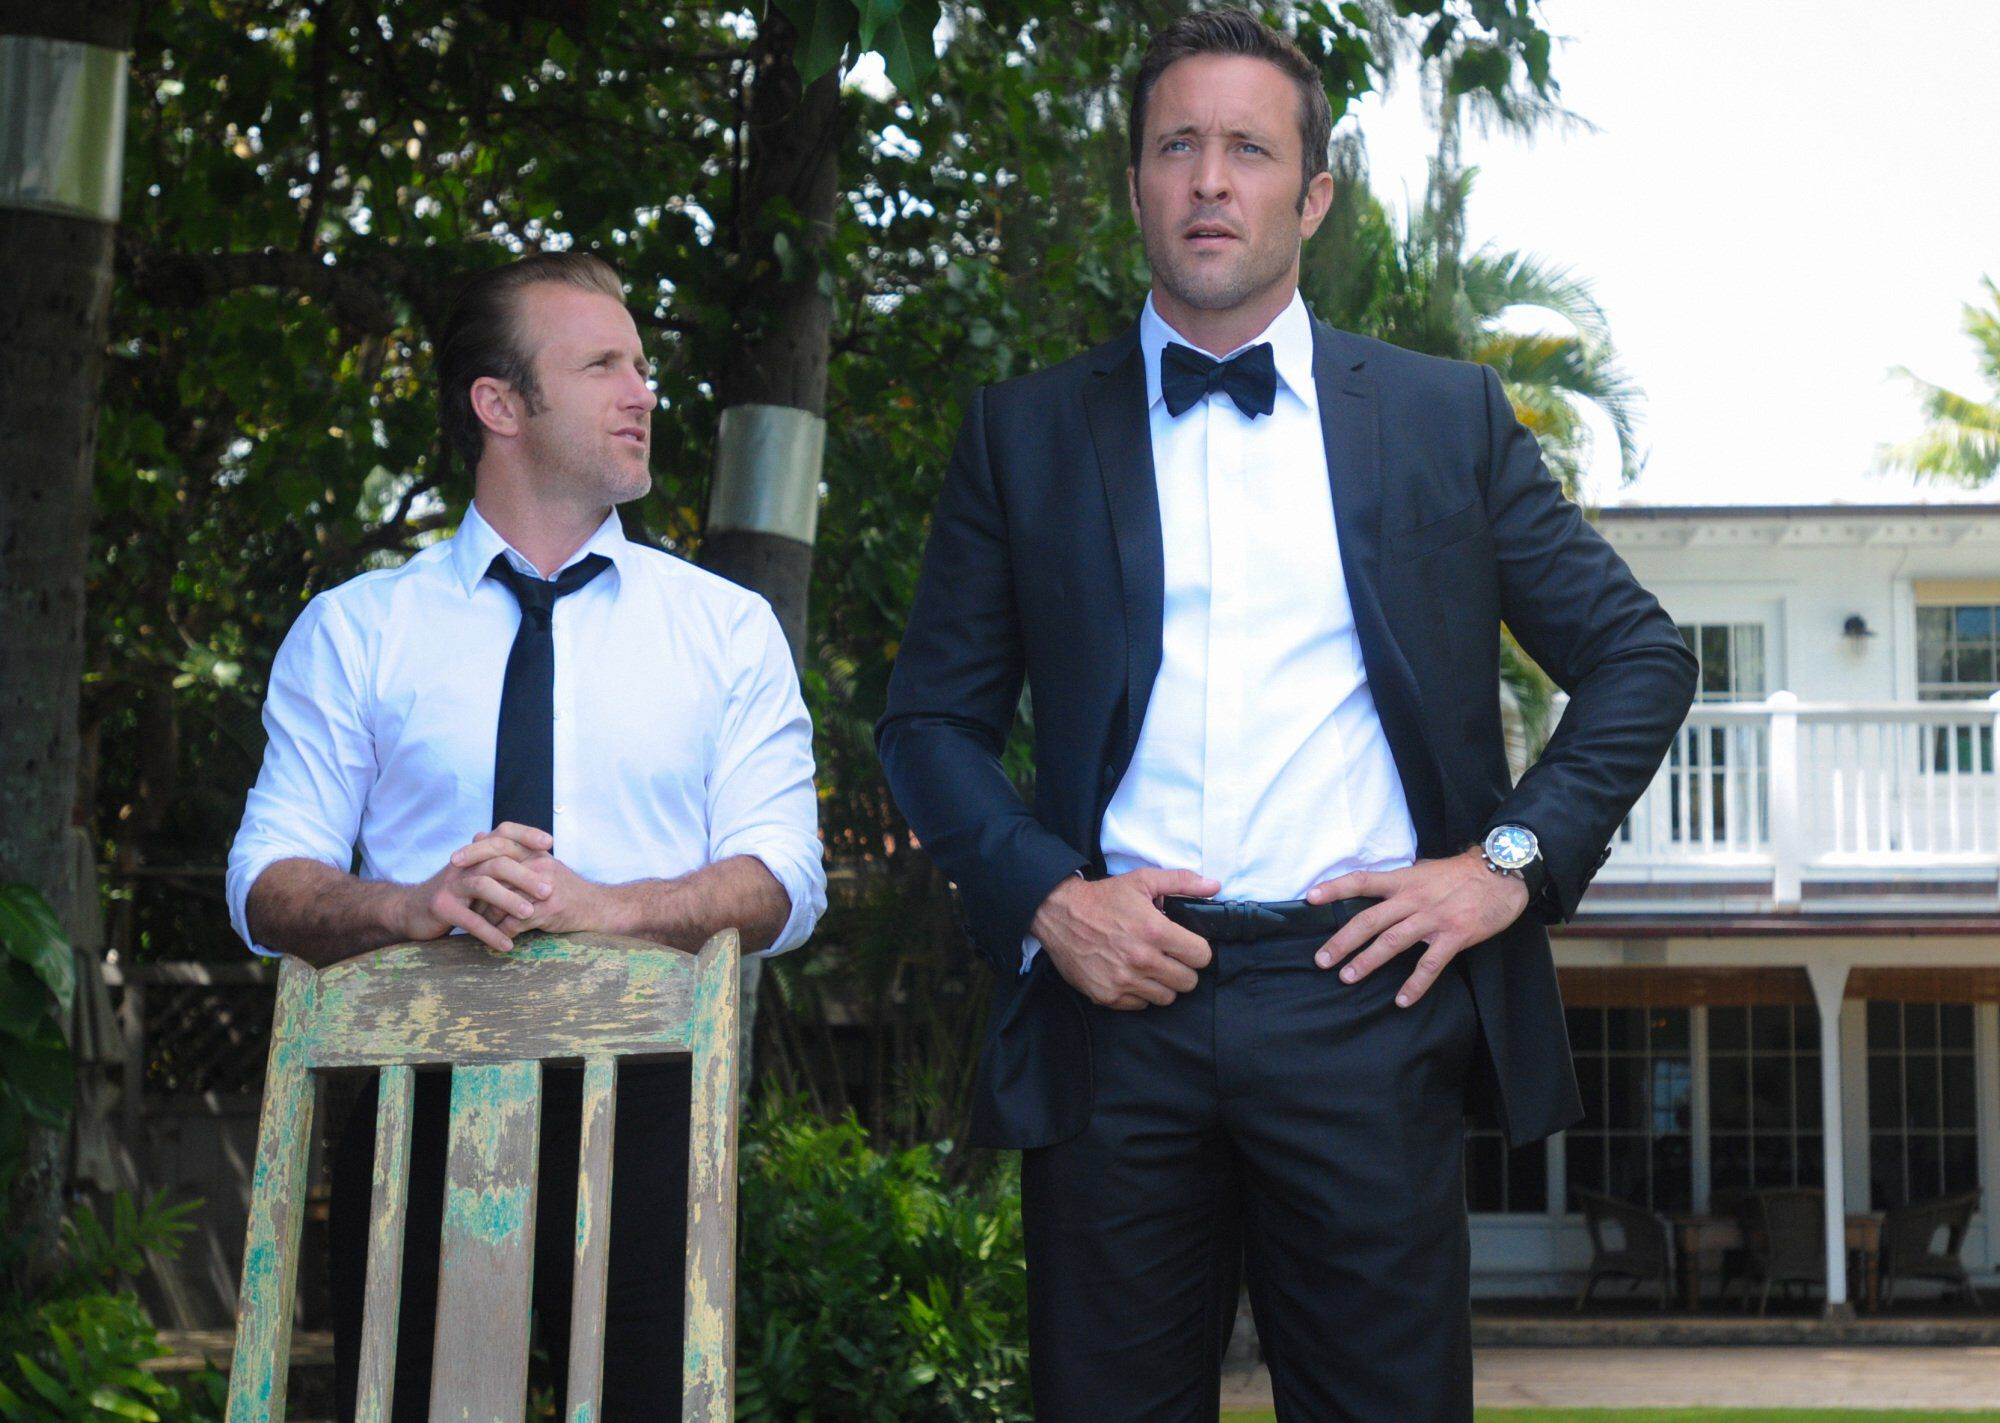 McDanno H50 5.25  ♥♥♥  Promo photos from the season finale.  Scott Caan and Alex O'Loughlin